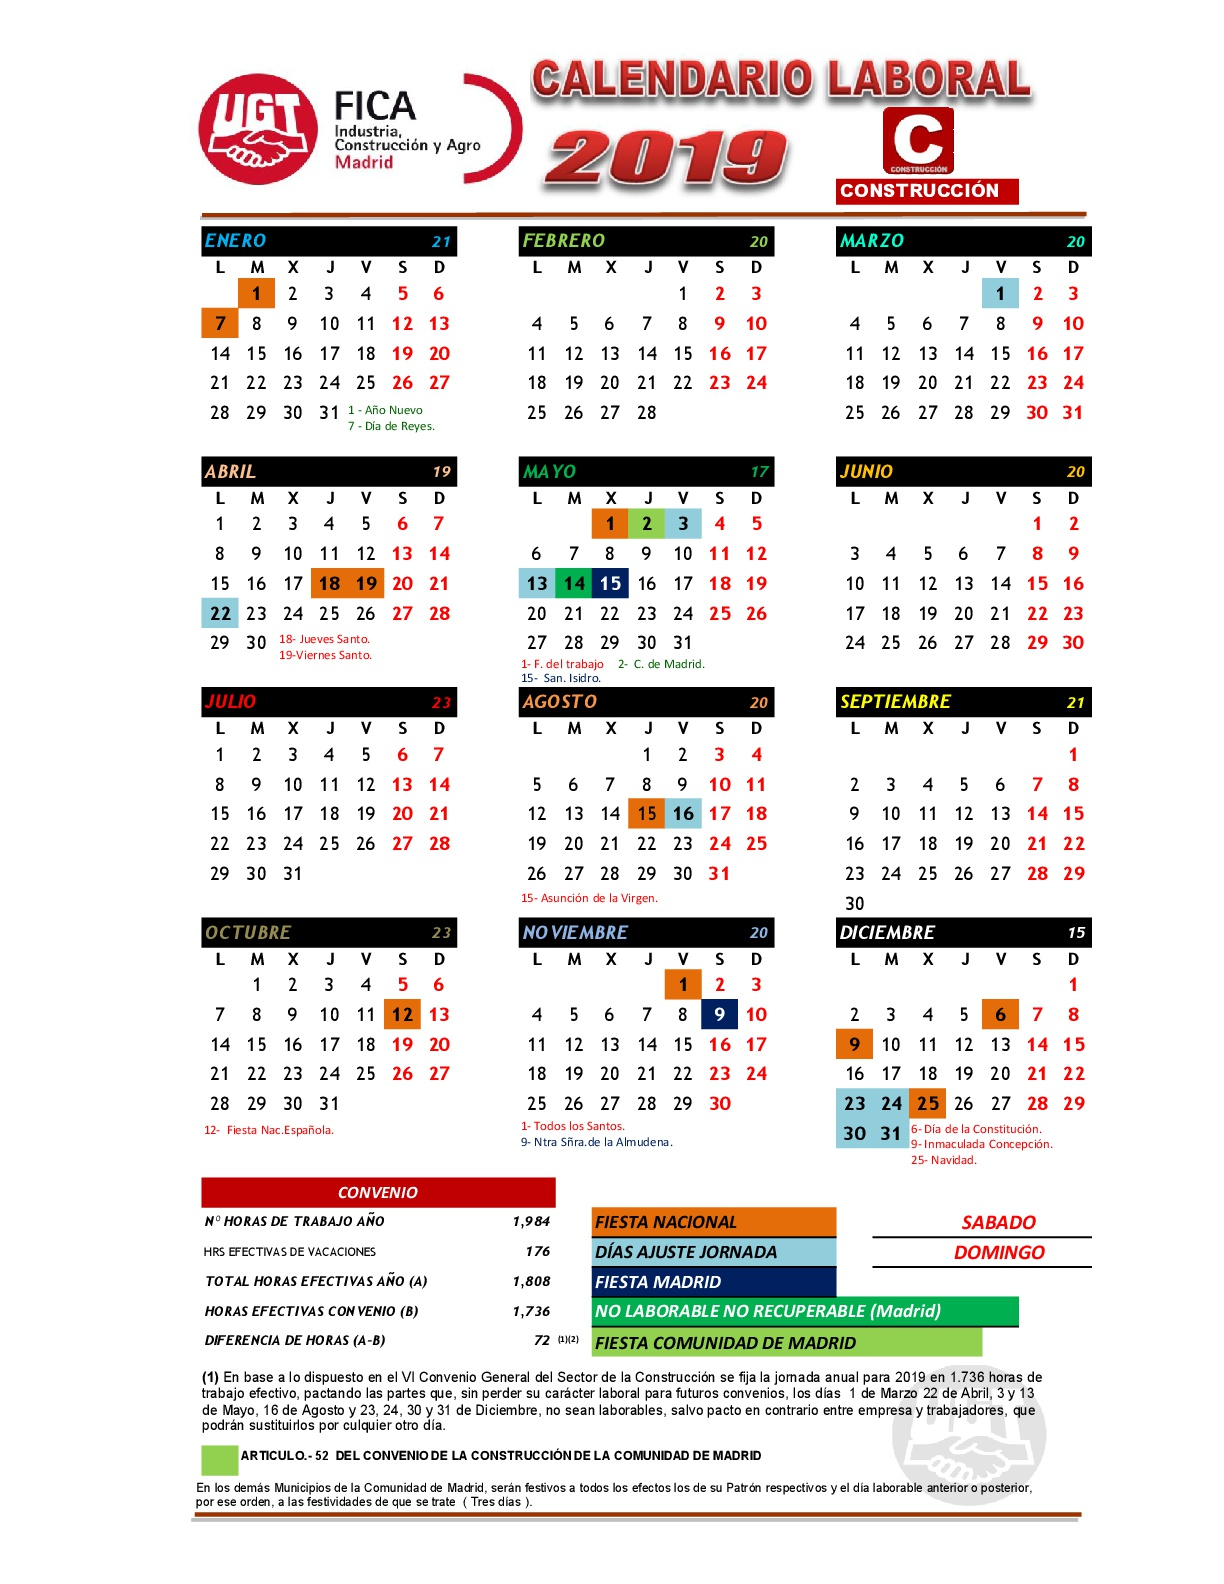 Calendario Laboral Pontevedra 2019.Comite Acciona Centro Calendario Laboral 2019 Construccion Madrid